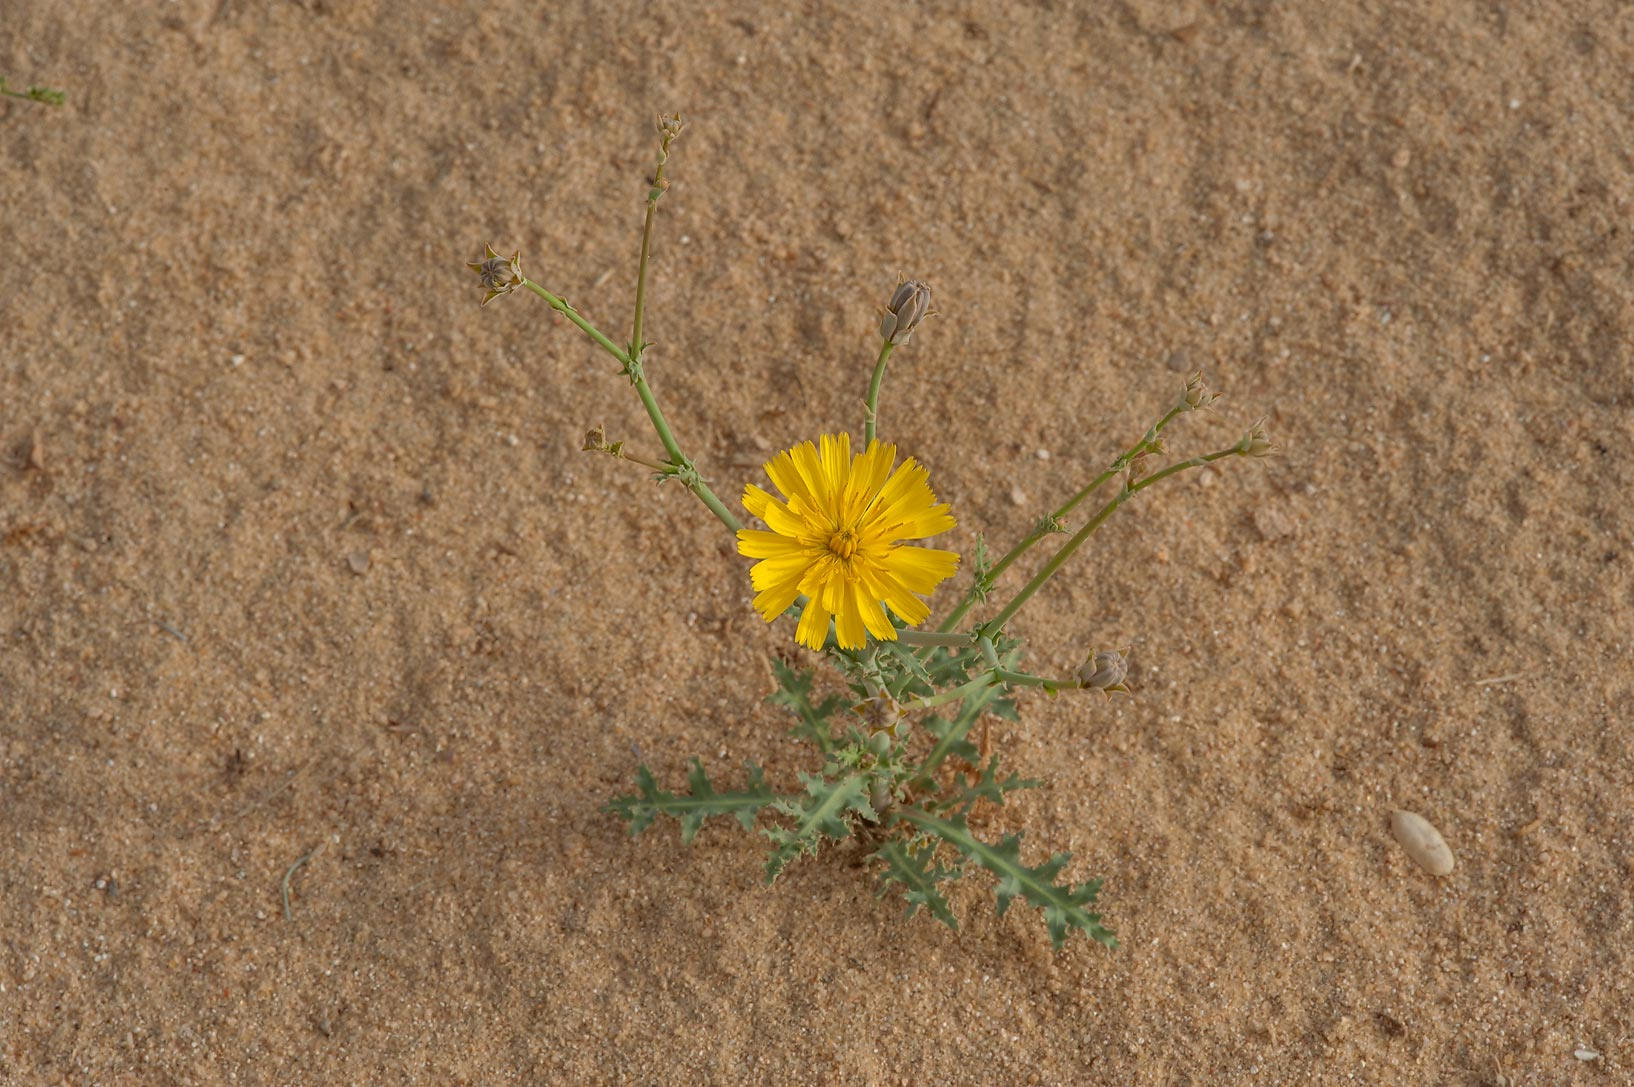 Small plant of Launaea mucronata (local name Huwa...of Khashem Al Nekhsh. Southern Qatar